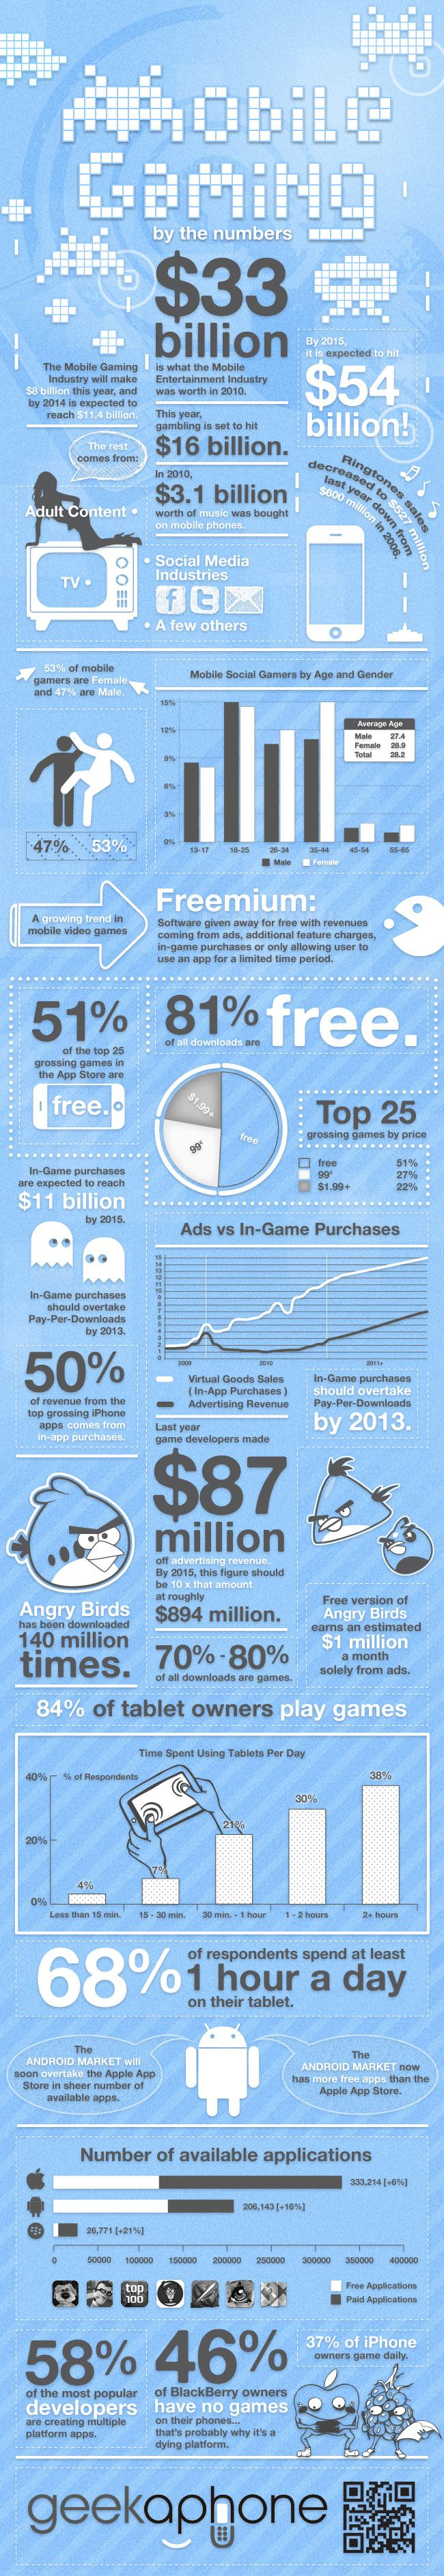 """Puts all that """"free"""" gaming in perspective. Now, who wants to think up the next """"Angry Birds"""" with me?"""